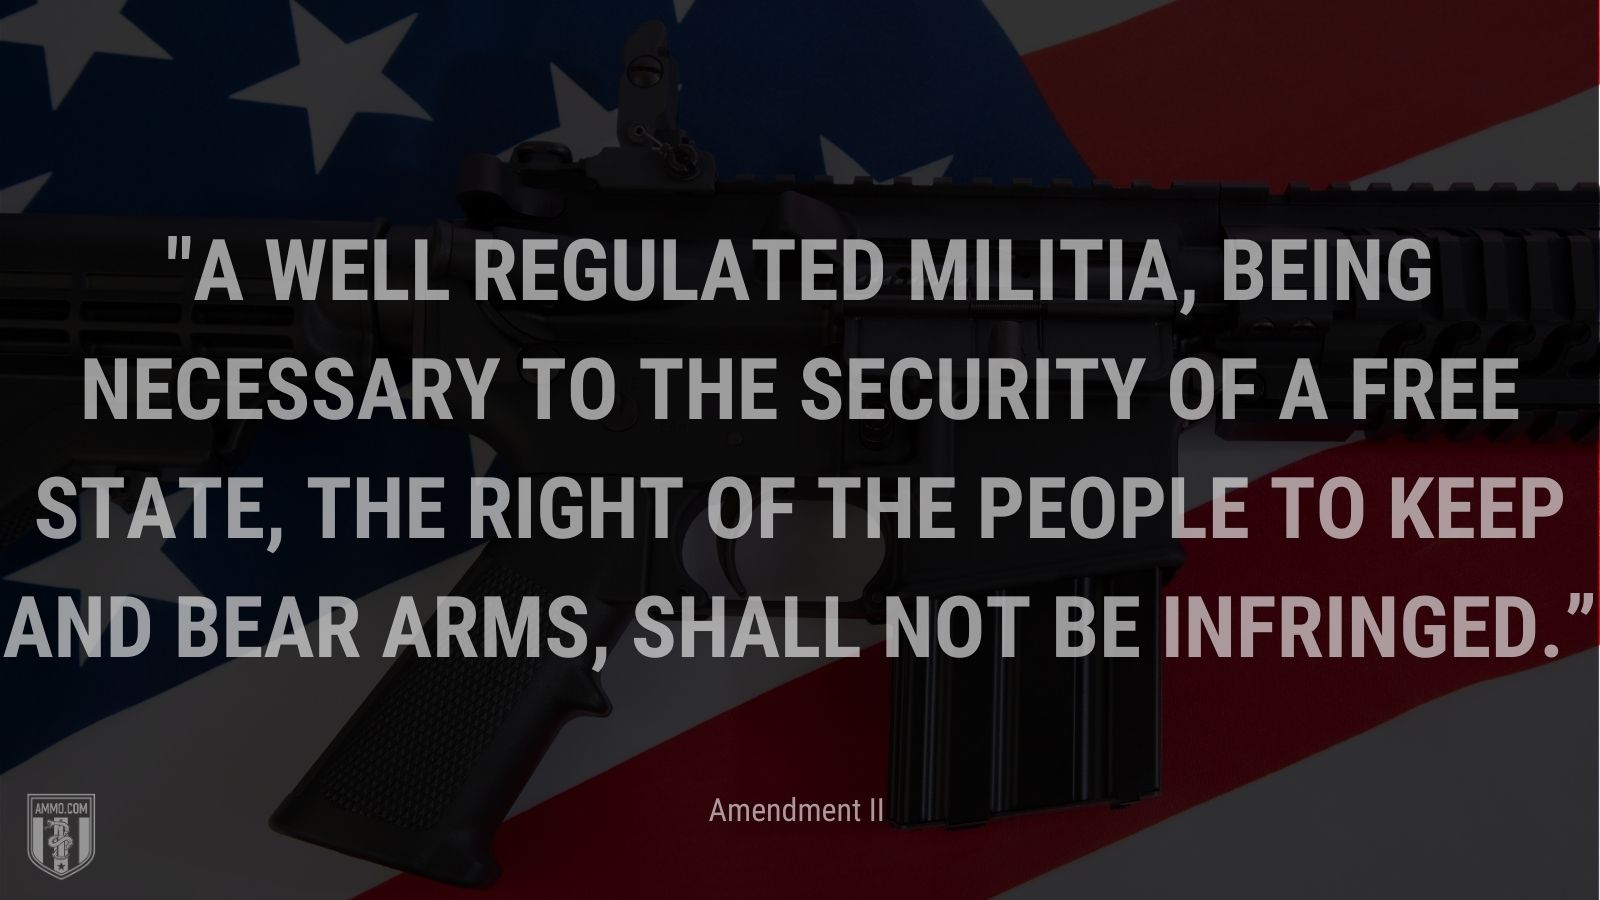 """""""A well regulated Militia, being necessary to the security of a free State, the right of the people to keep and bear Arms, shall not be infringed."""" - Amendment II"""